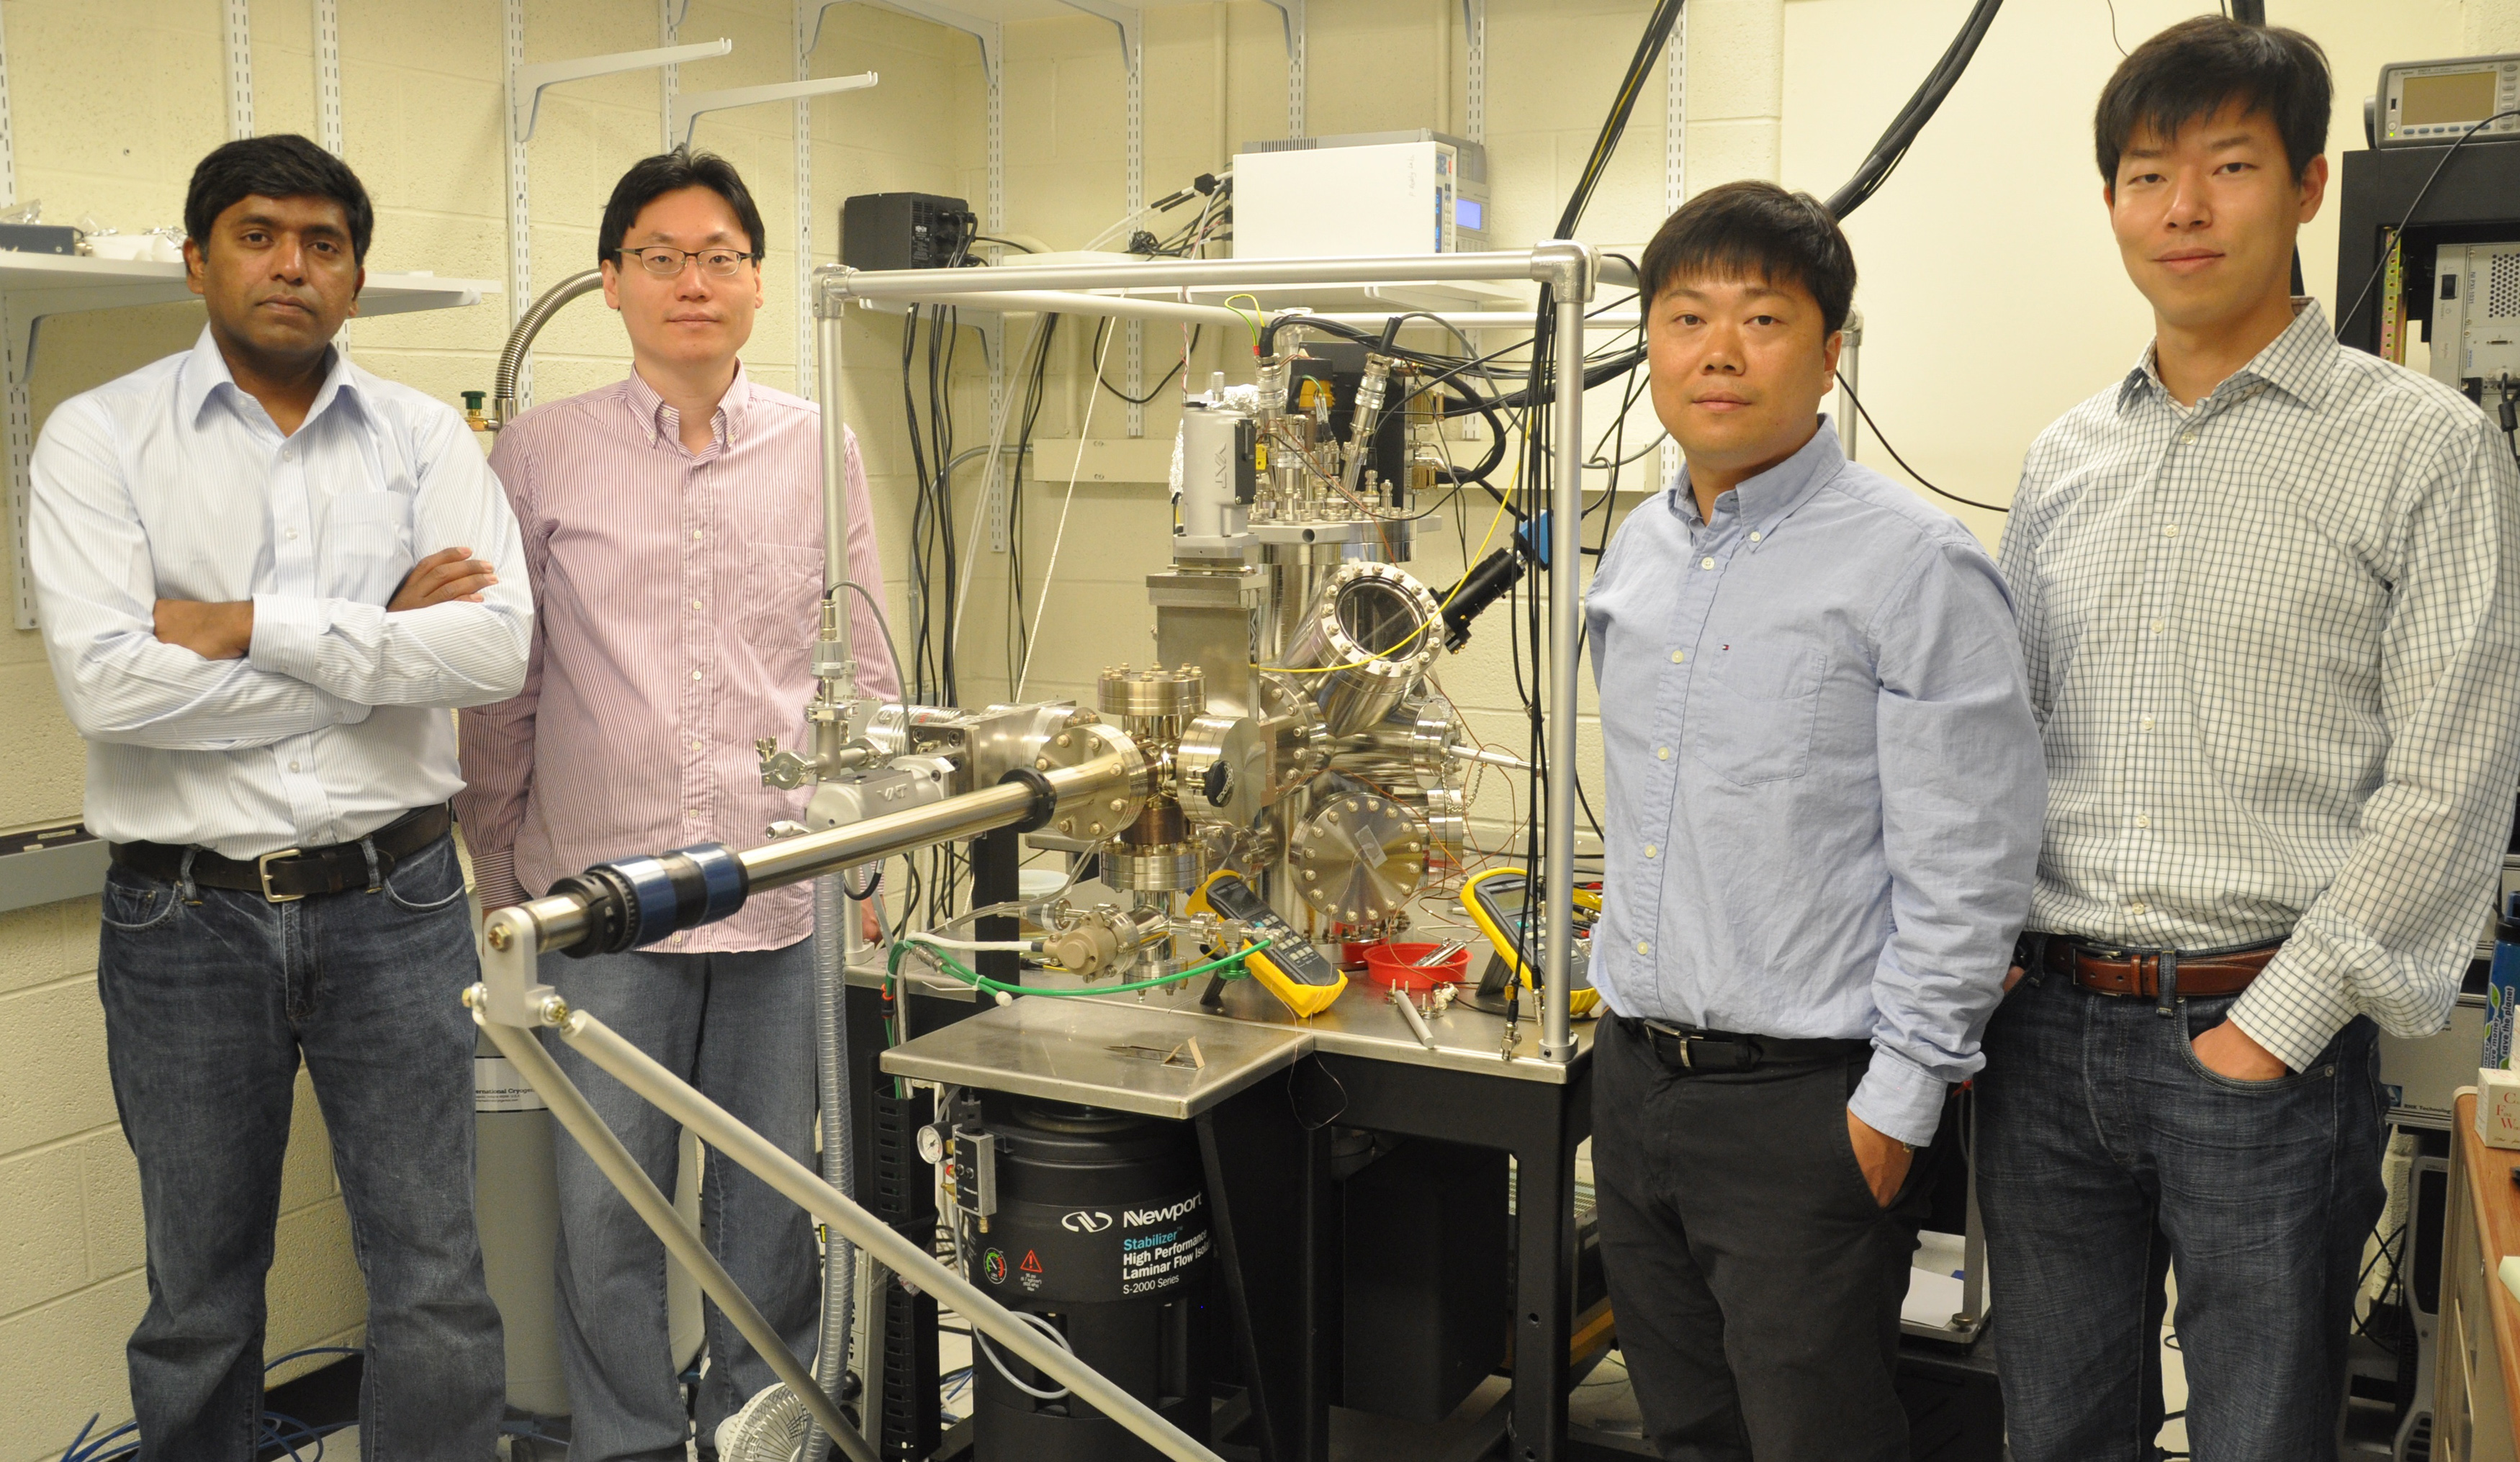 Research team (Right to left): Woochul Lee, Kyeongtae Kim, Wonho Jeong, and Pramod Reddy